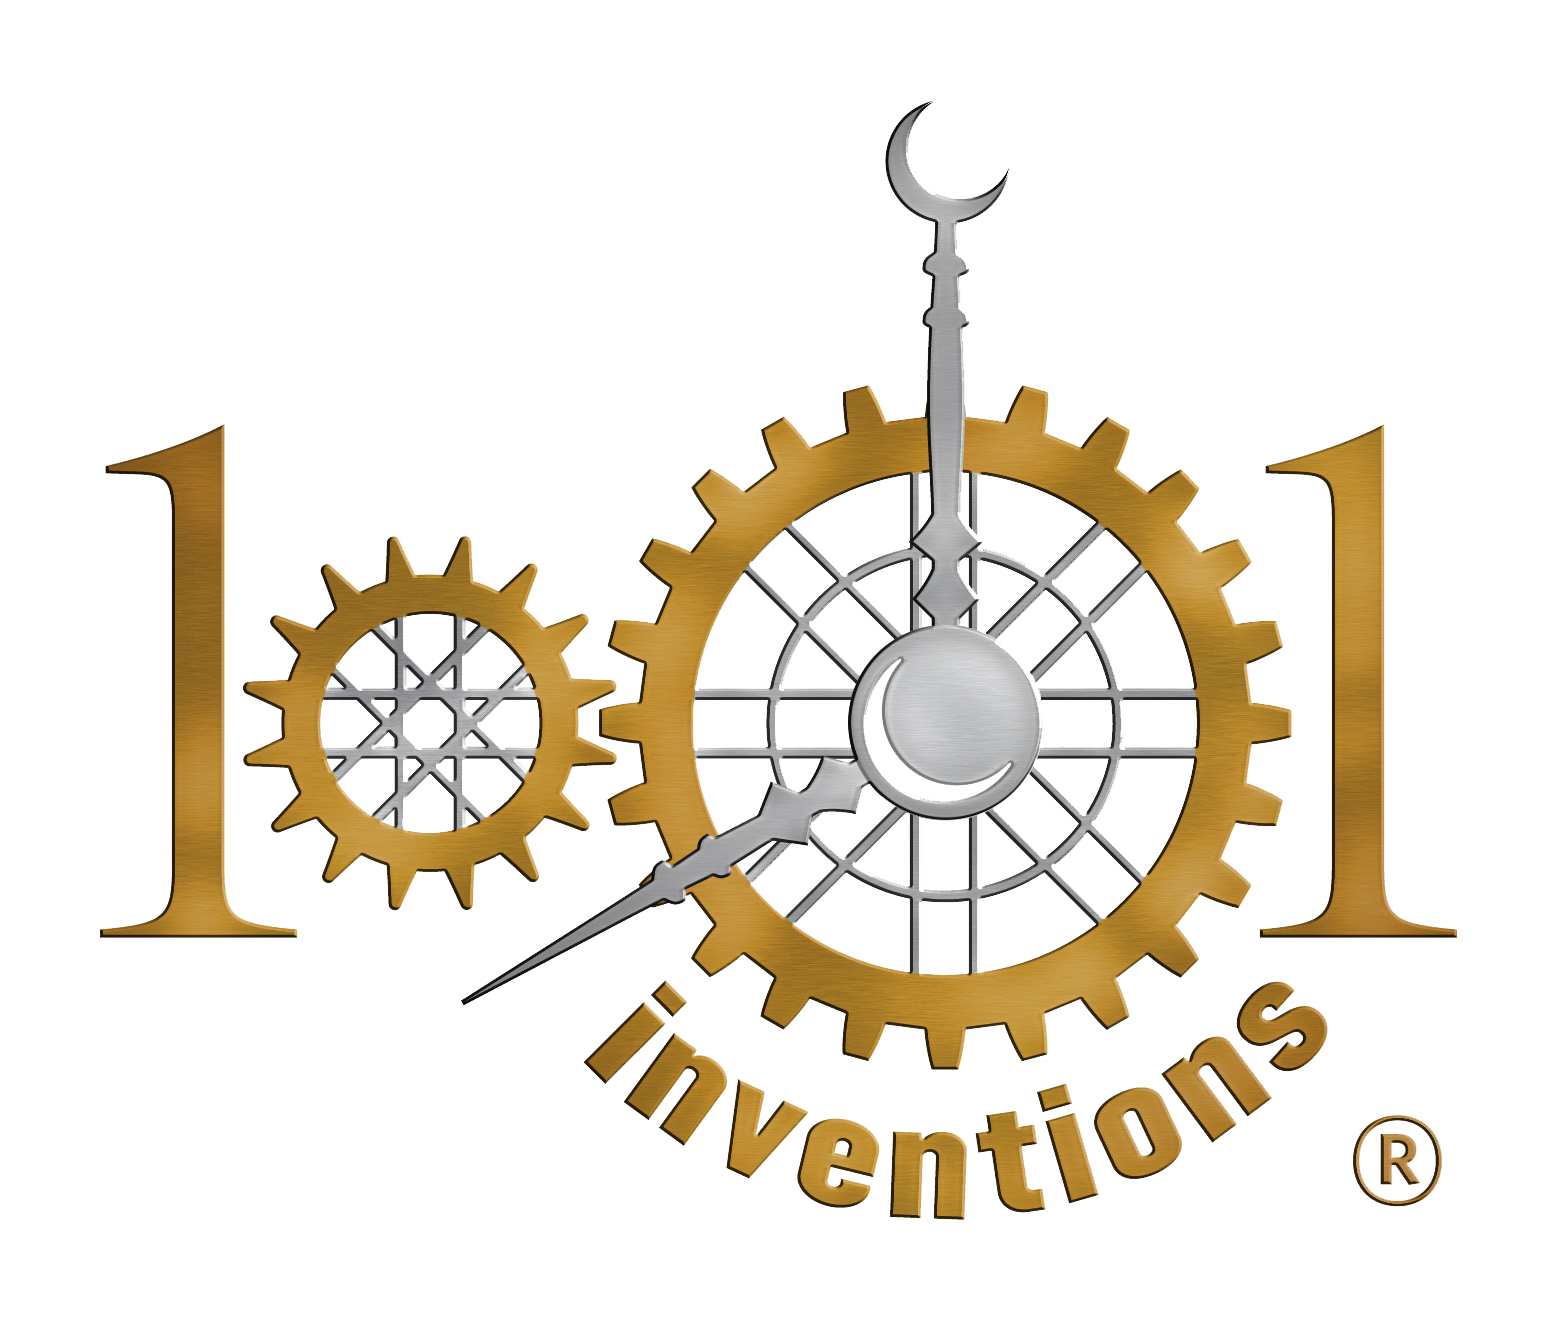 1001 Inventions Logo